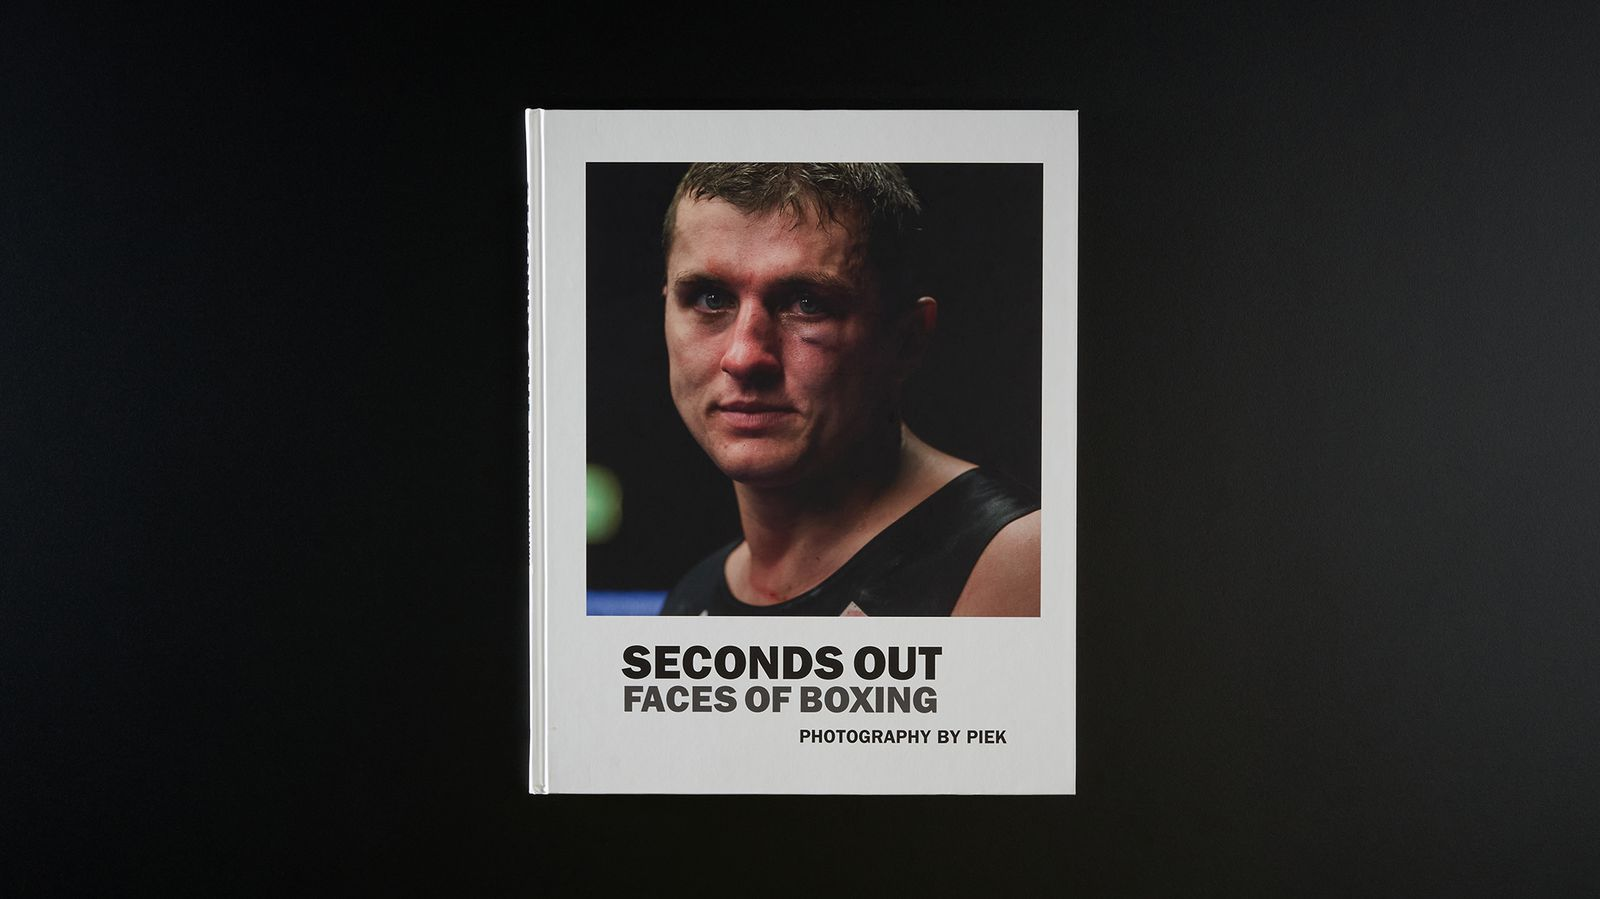 Seconds out - Faces of boxing